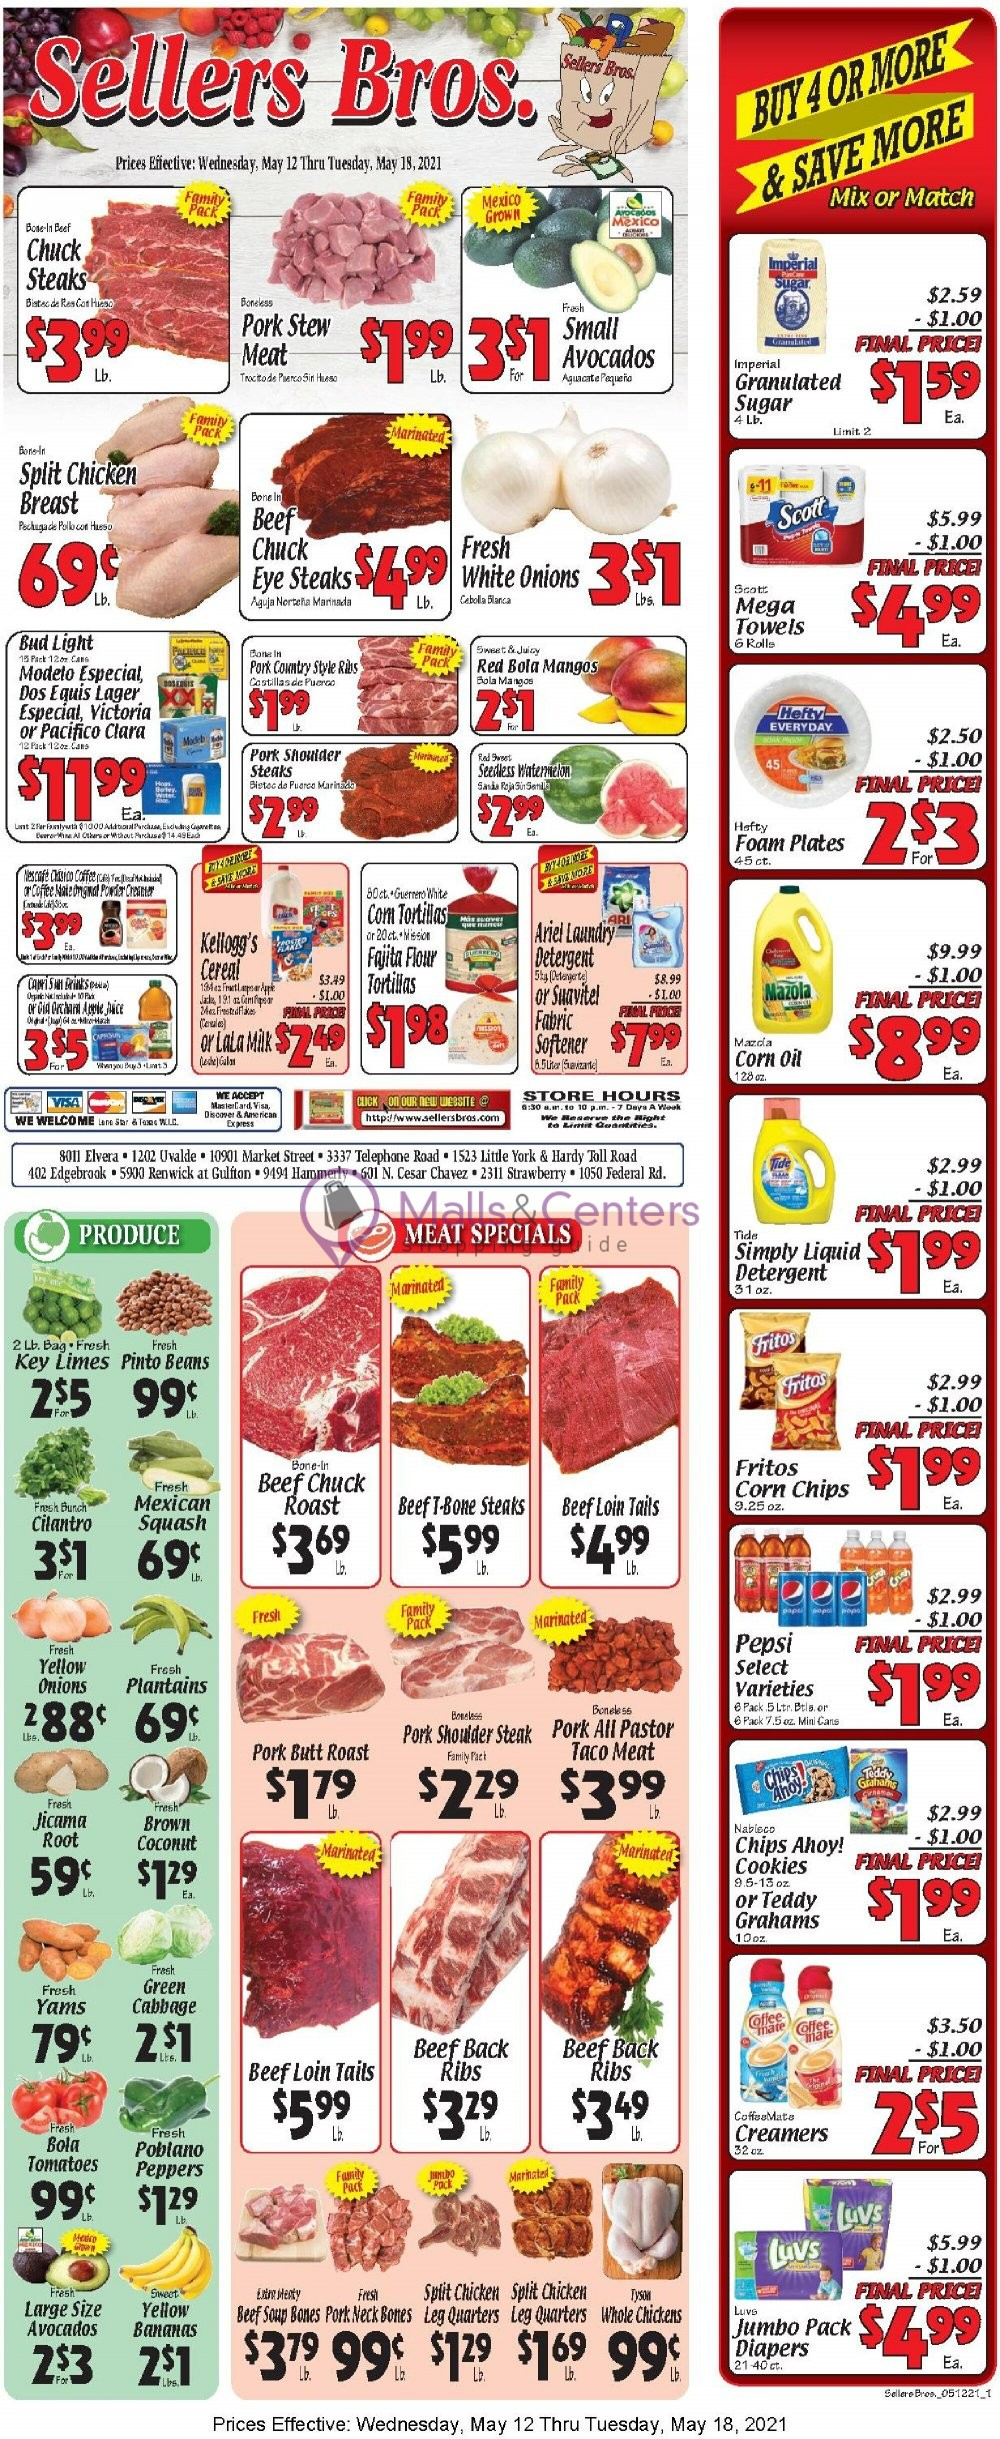 weekly ads Sellers Bros. - page 1 - mallscenters.com